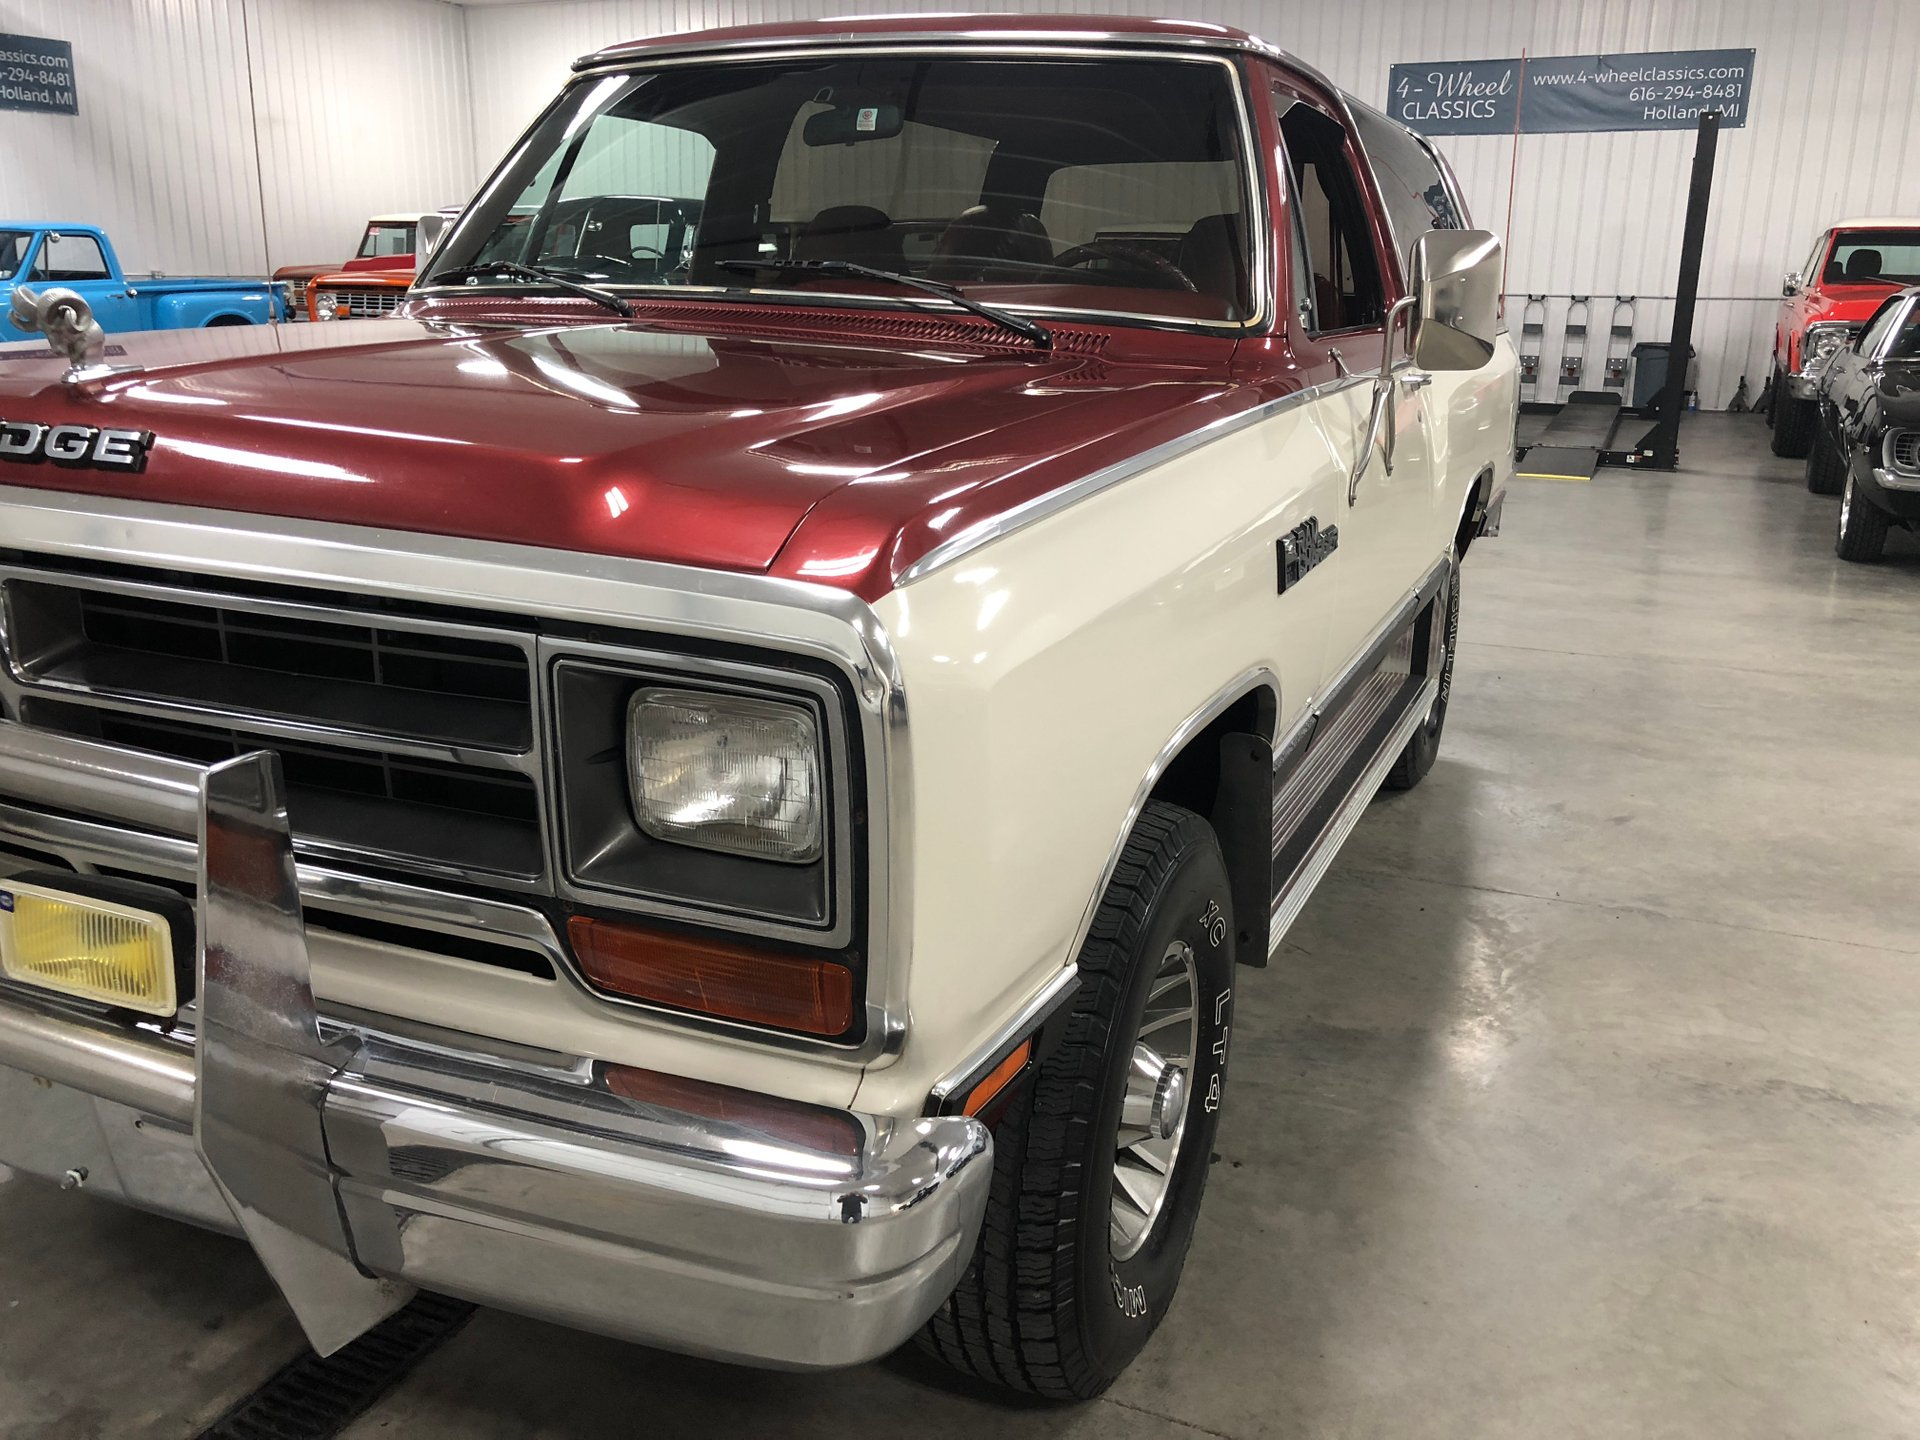 1987 Dodge Ramcharger 4 Wheel Classics Classic Car Truck And Suv Sales